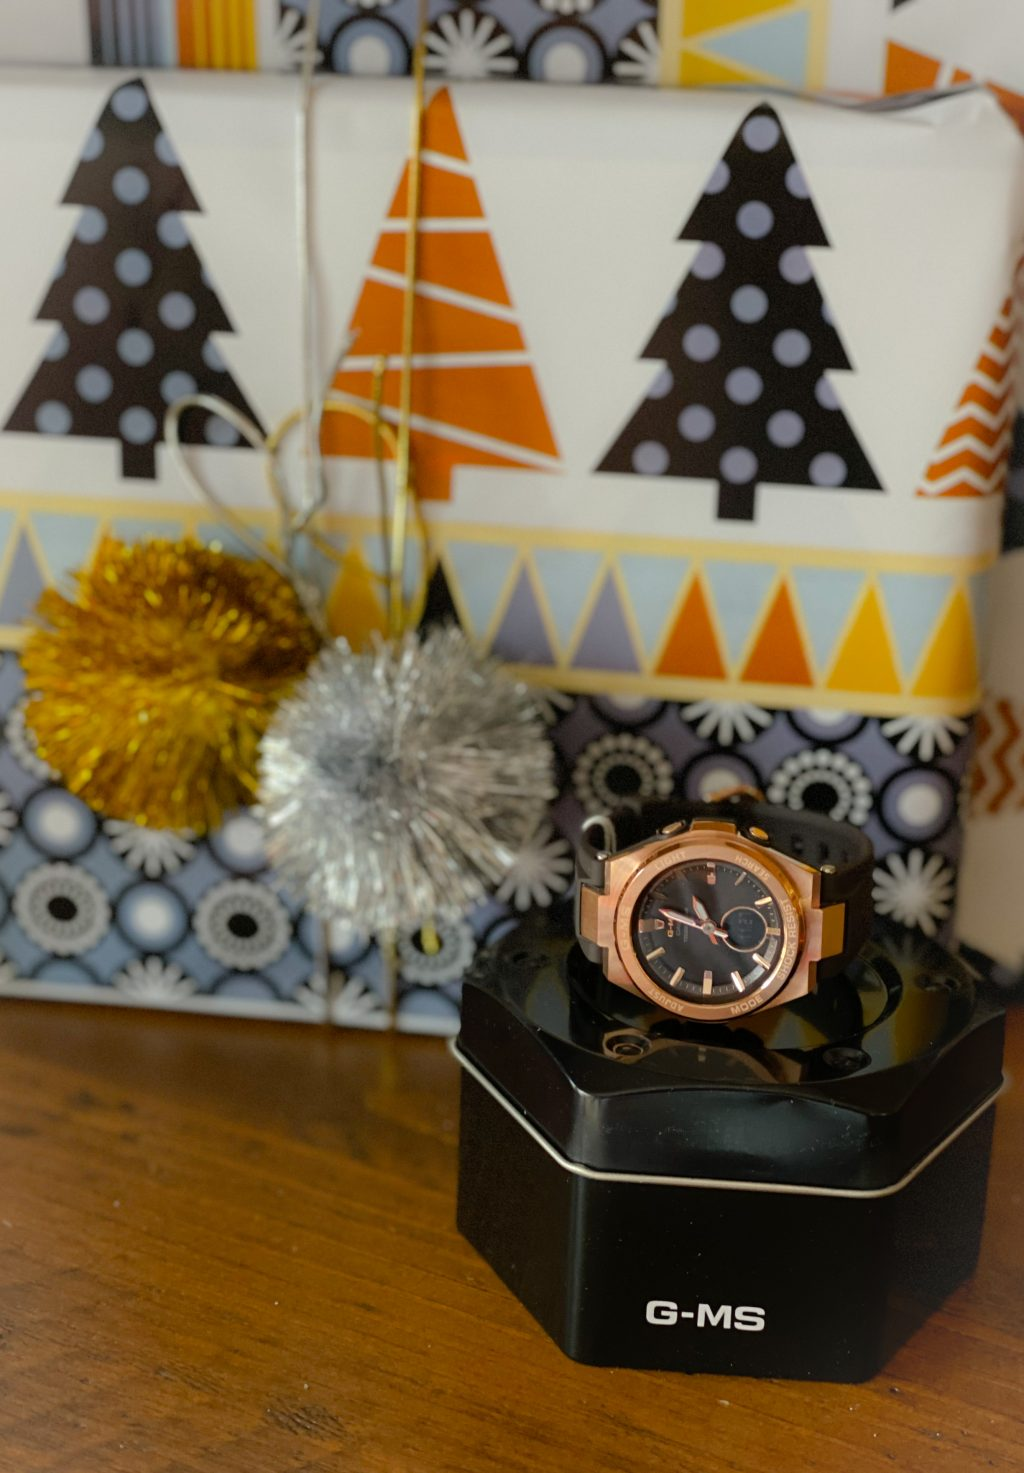 rose gold baby g watch next to metallic wrapped gifts